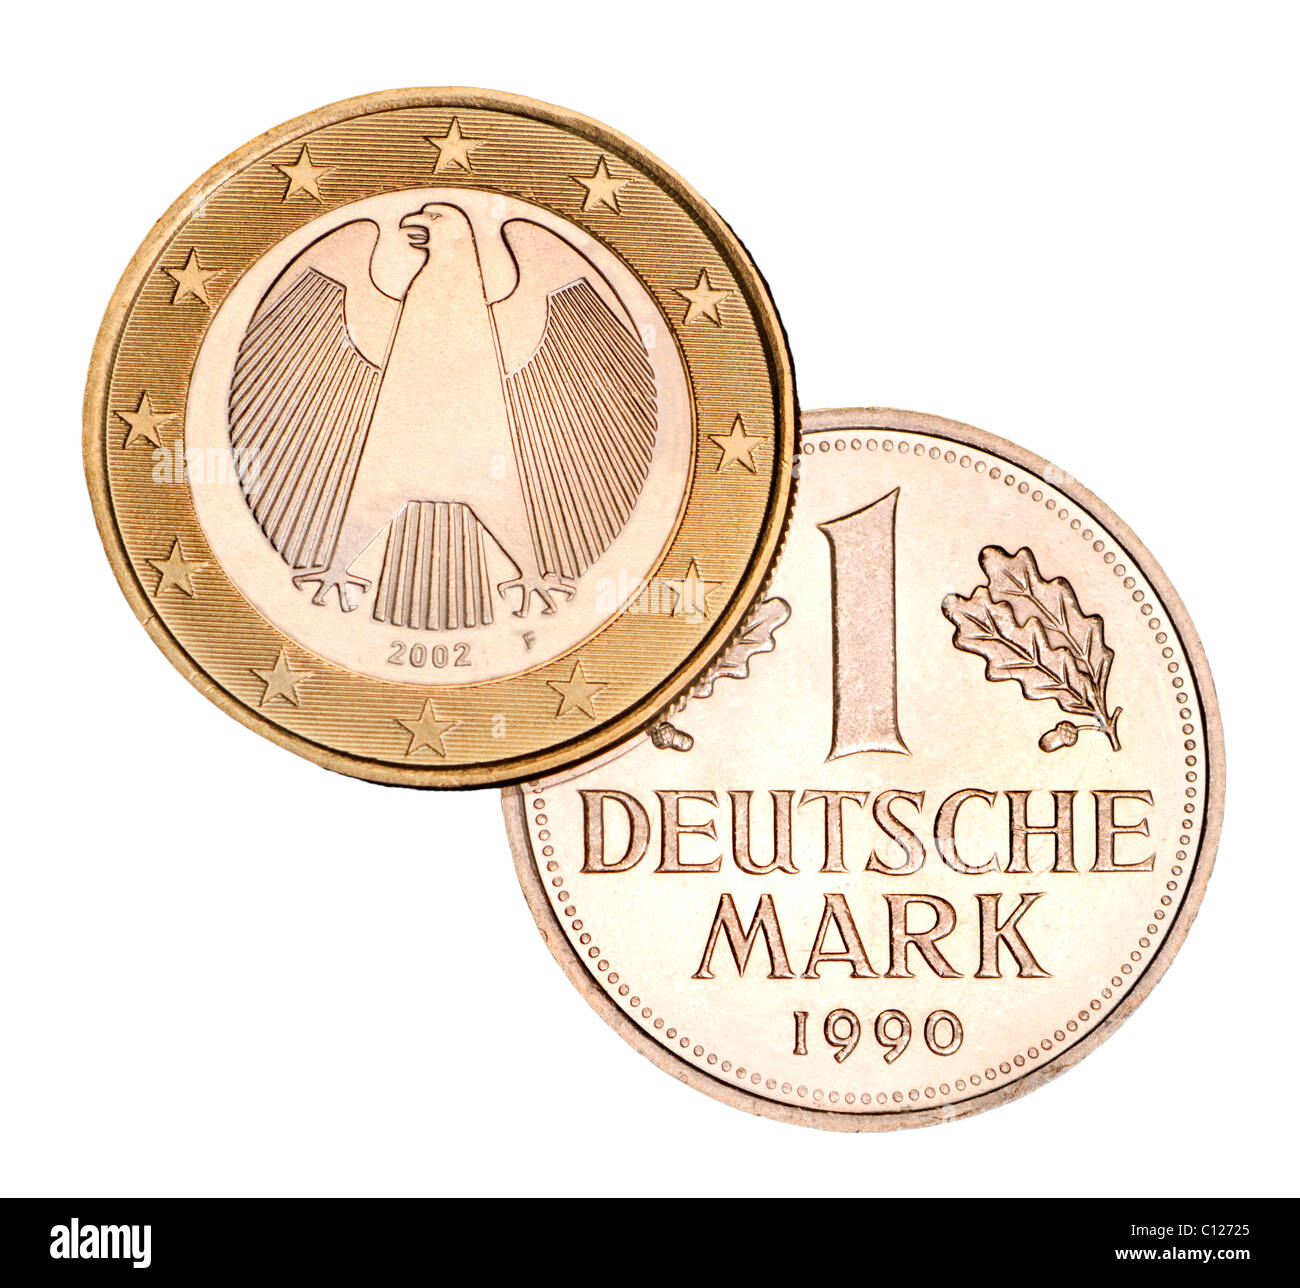 German 1 Euro coin from 2002 and pre-Euro 1 Deutschmark coin from 1990 - Stock Image